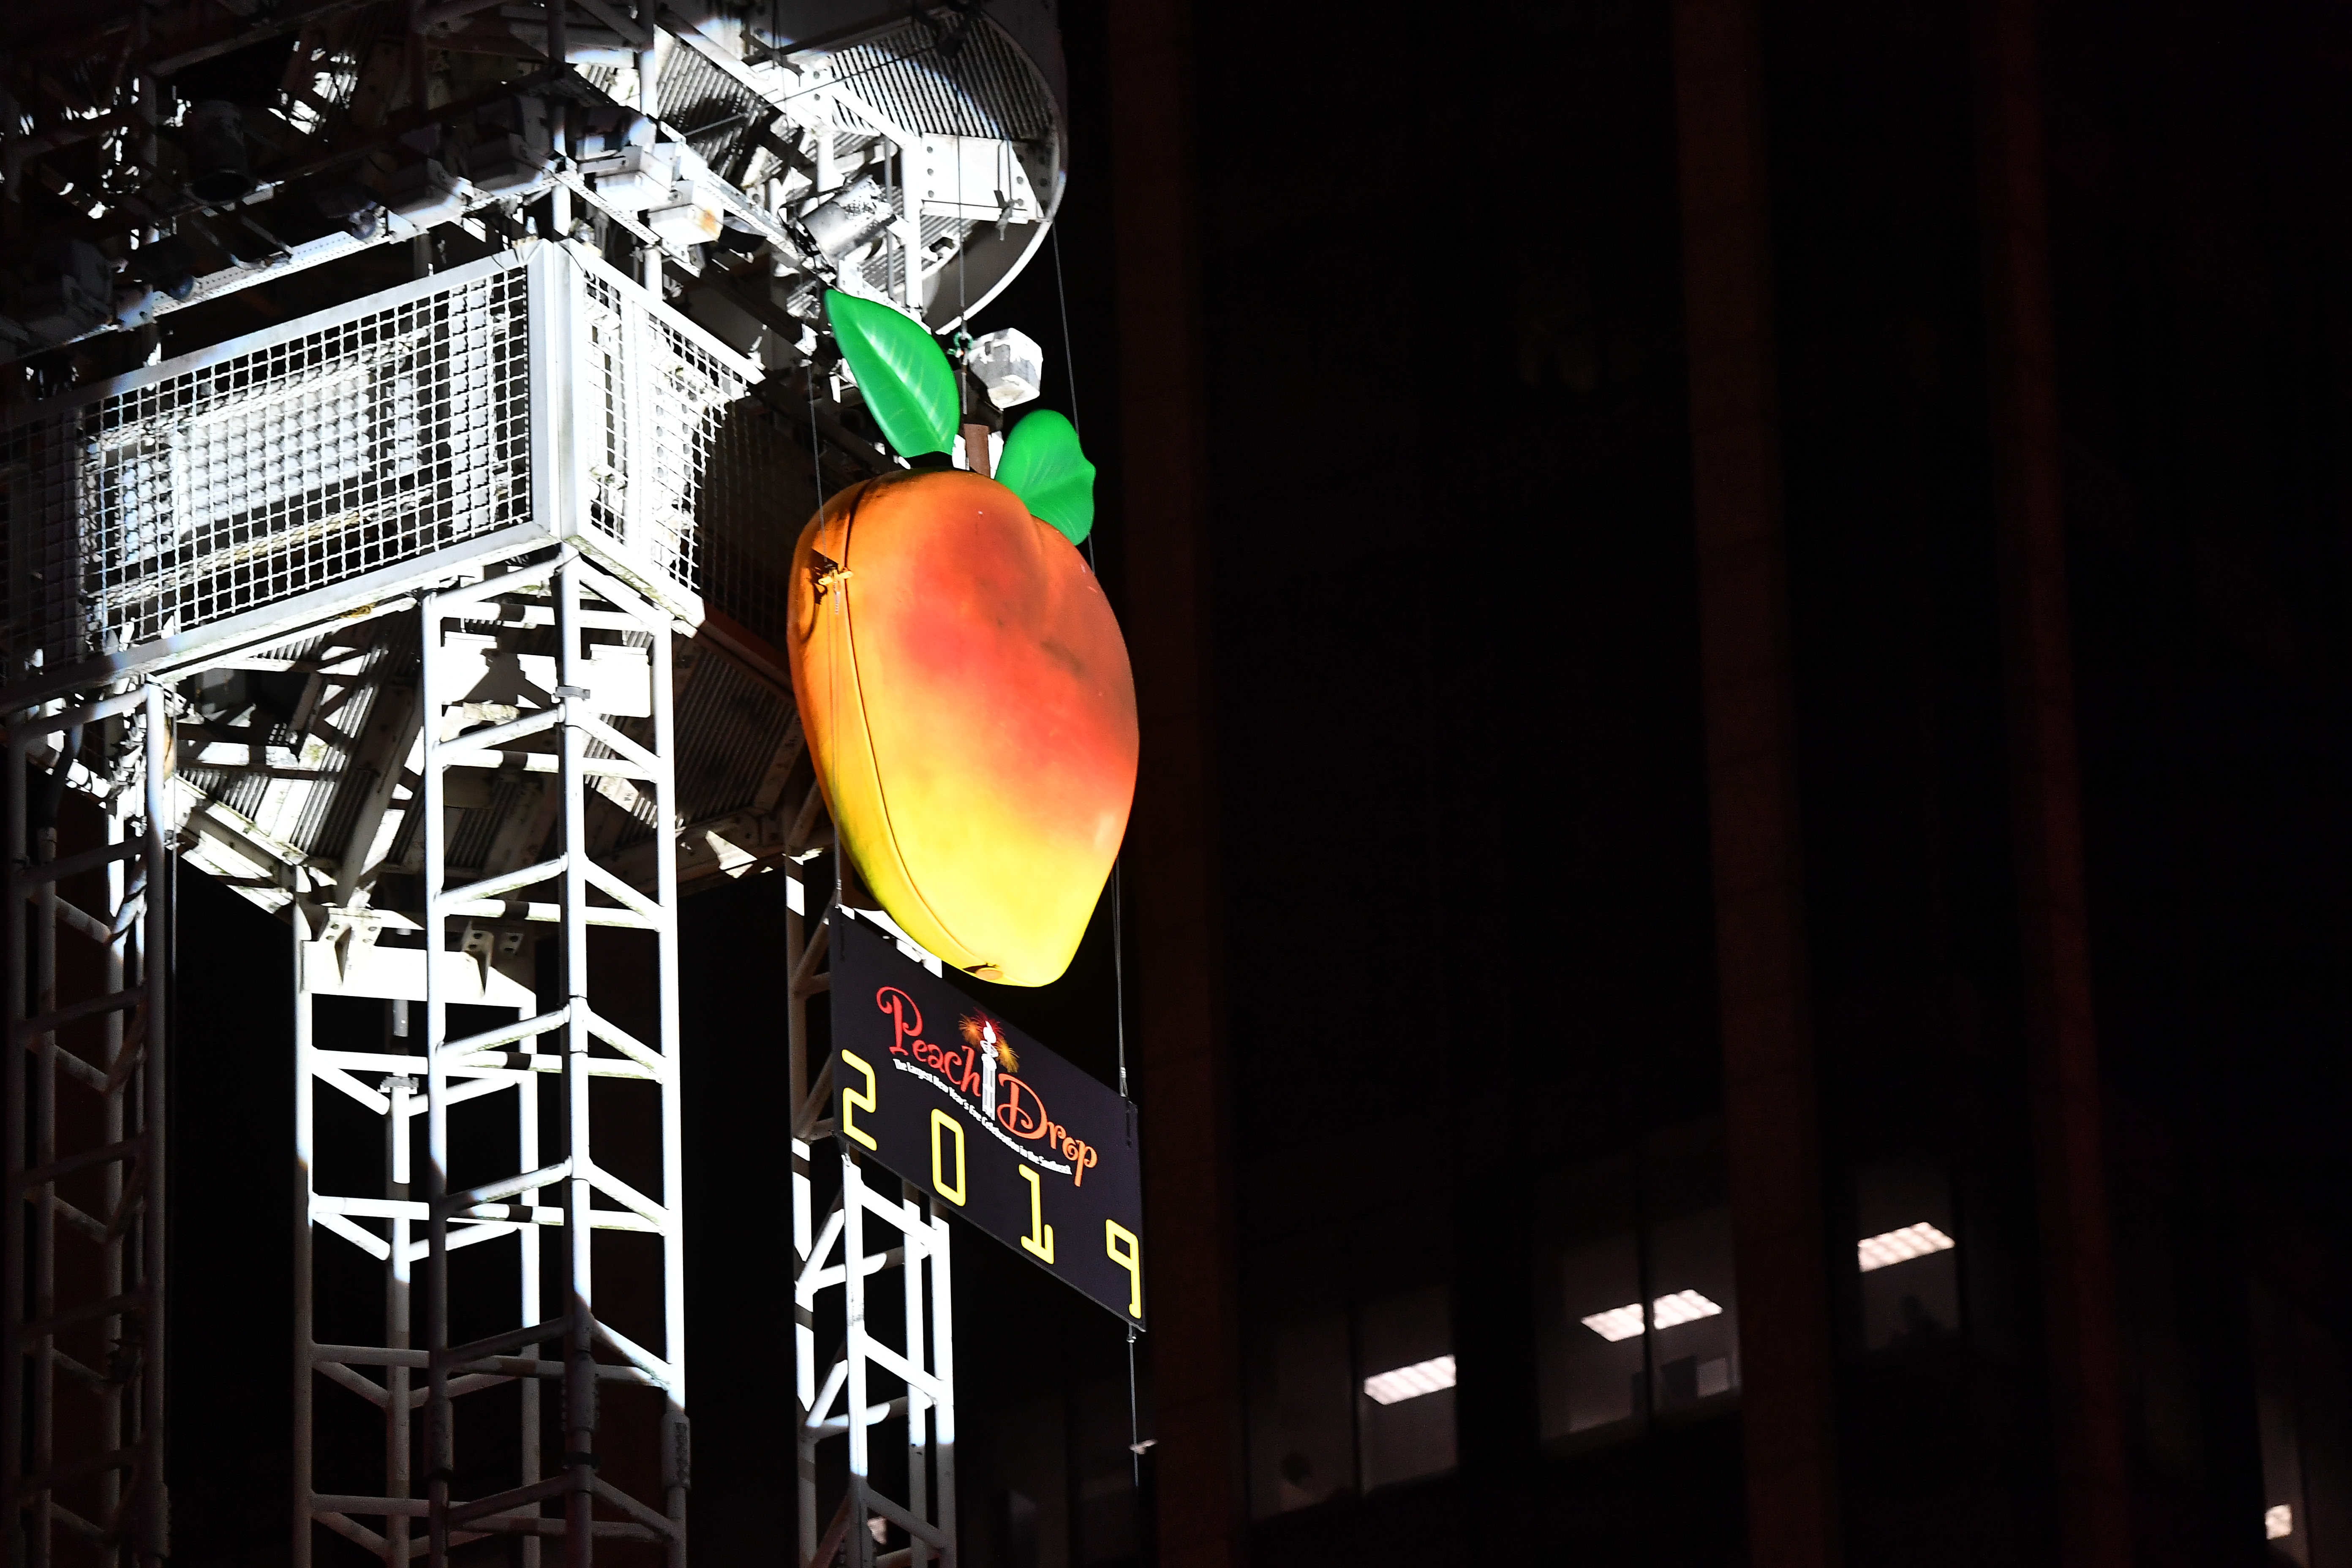 A picture of the massive peach dropped each New Years Eve in downtown Atlanta.